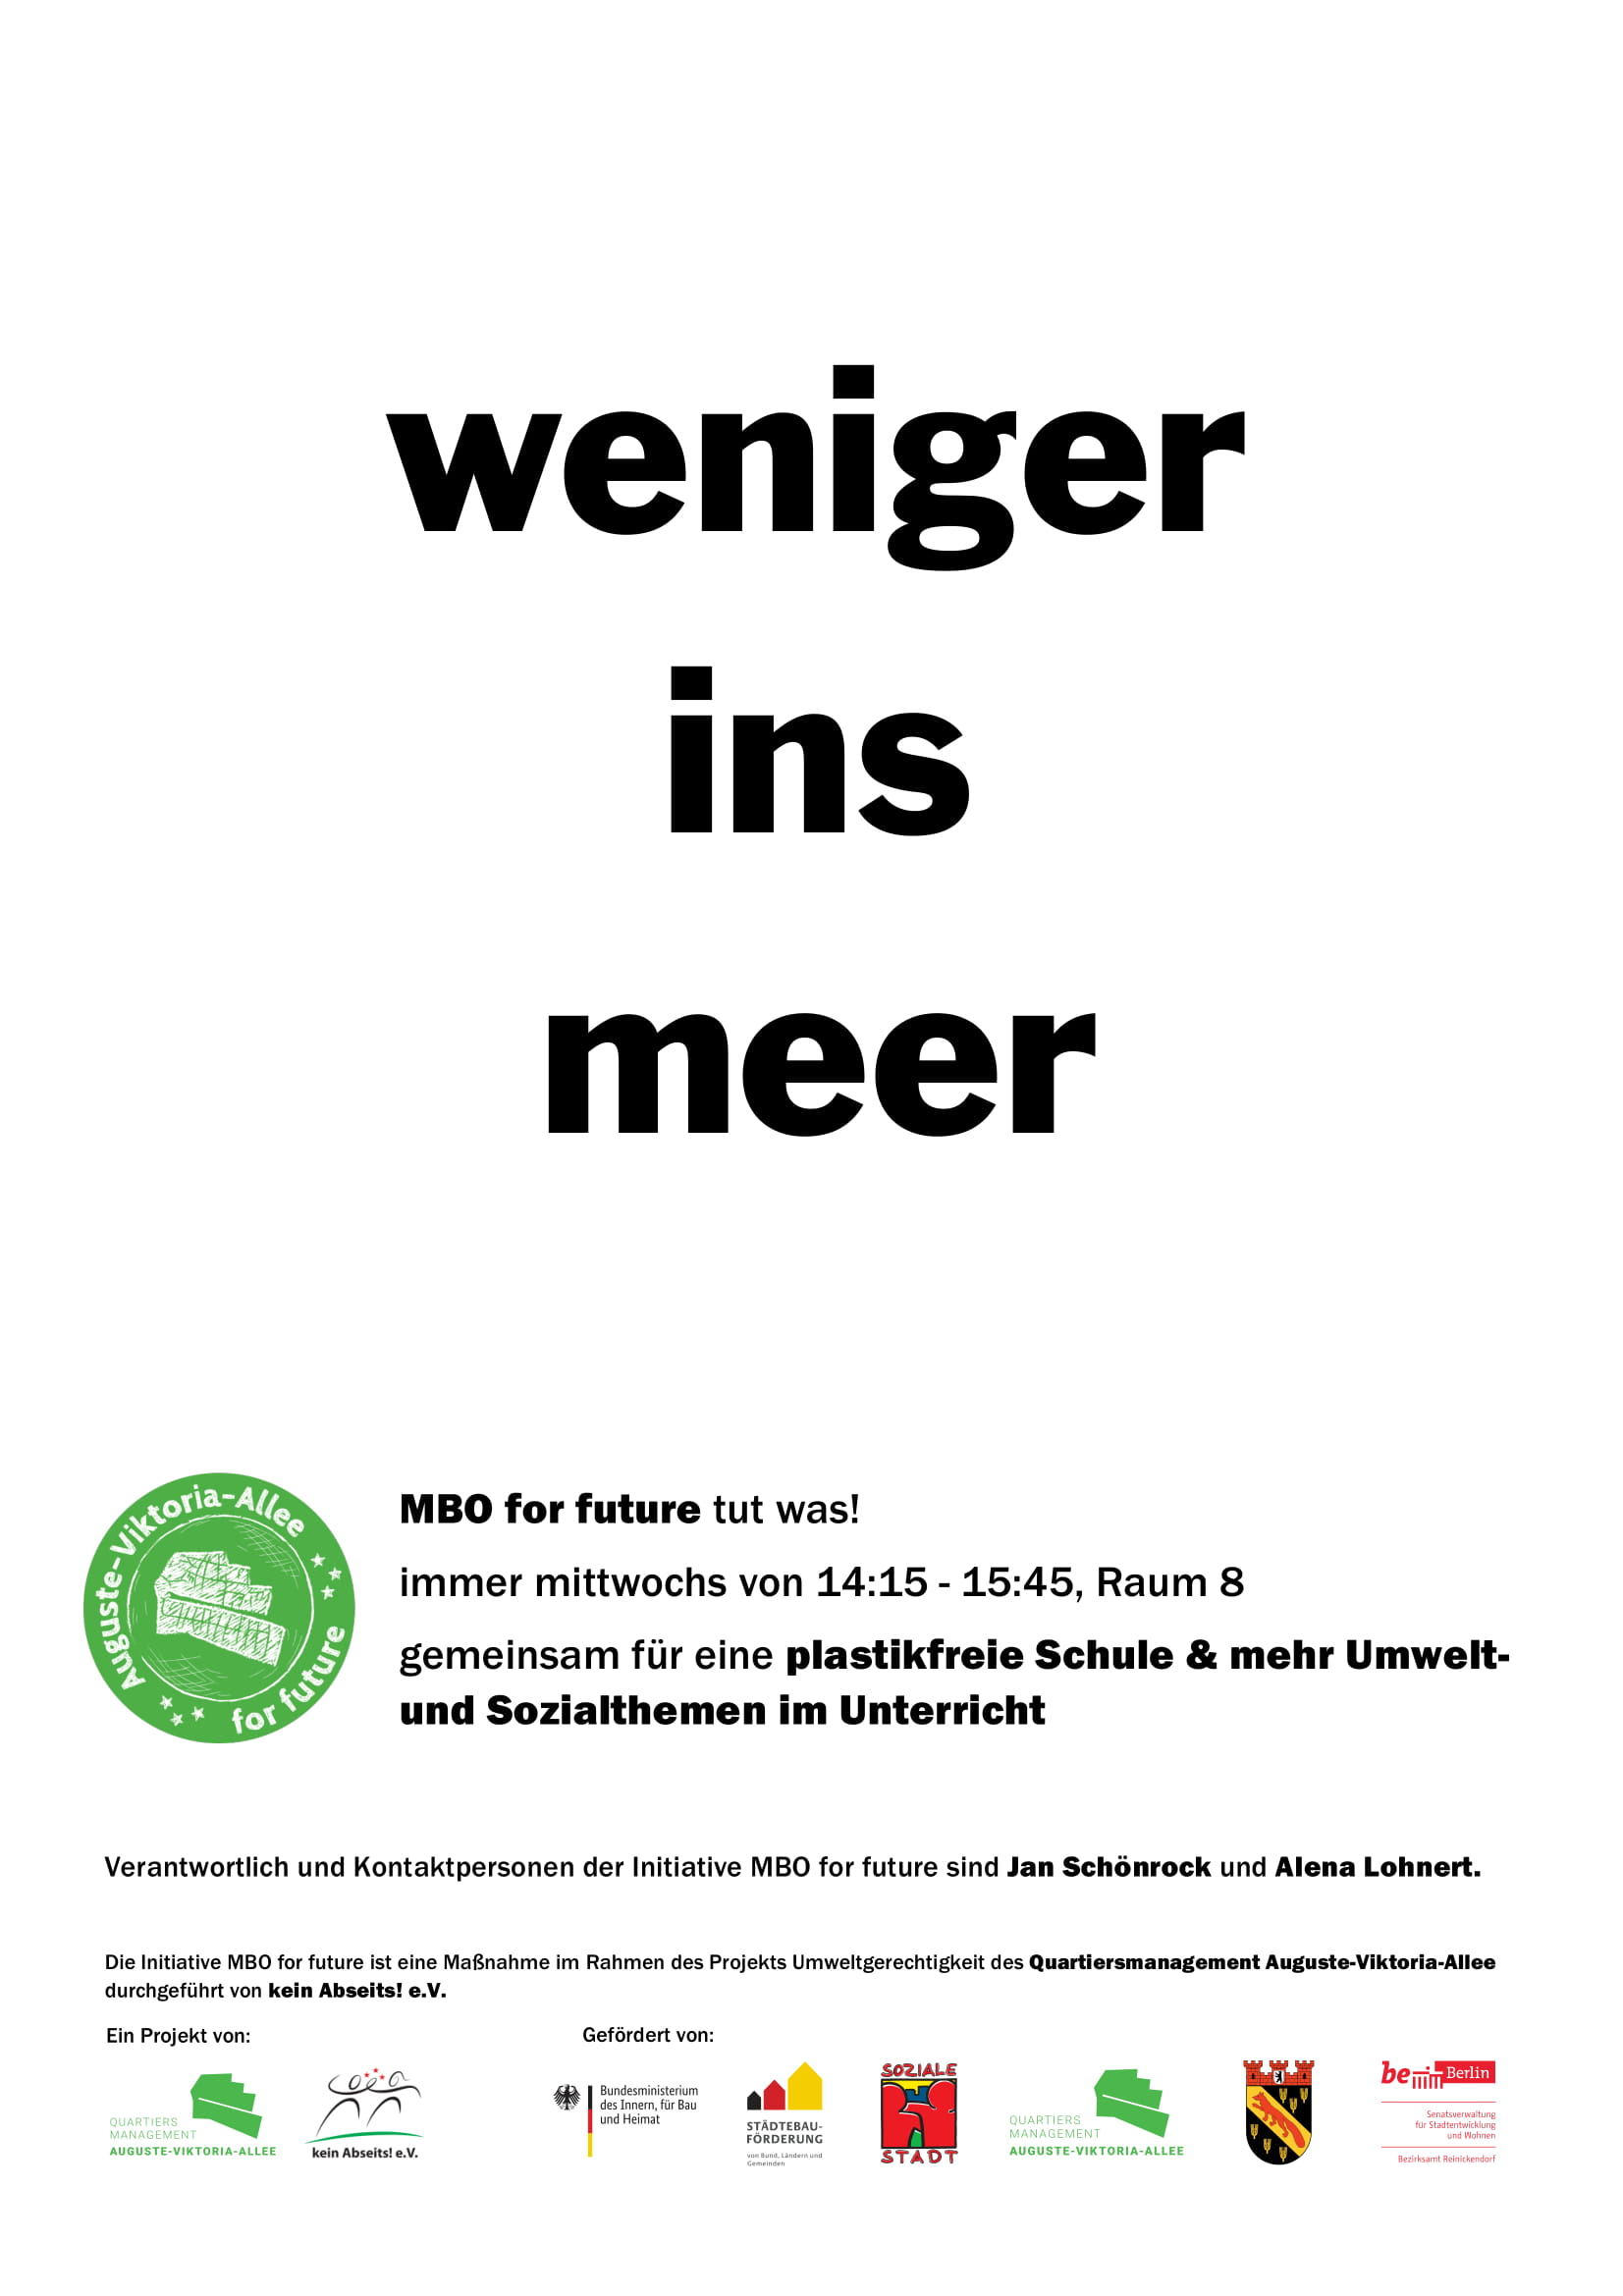 MBO-for-future_weniger-ins-meer-1